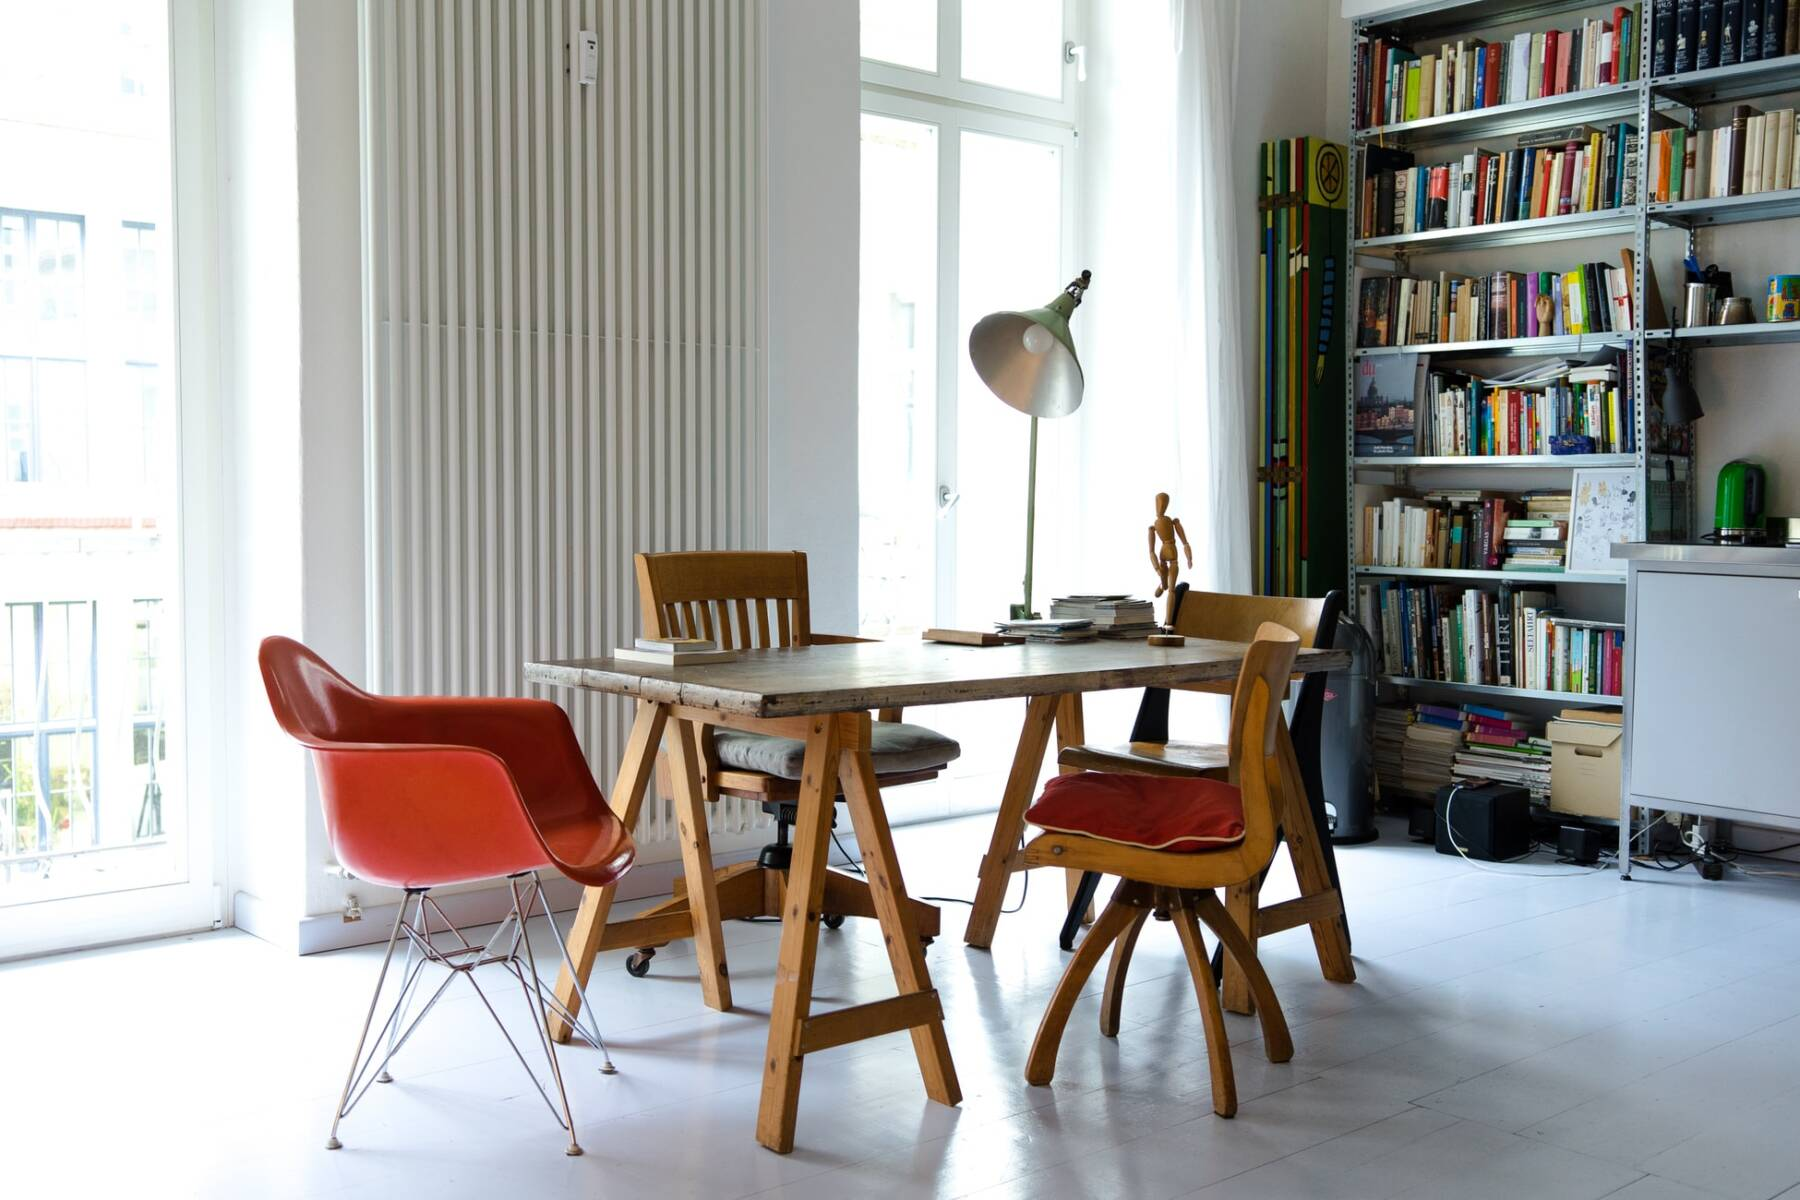 vertical column radiator in a dining room